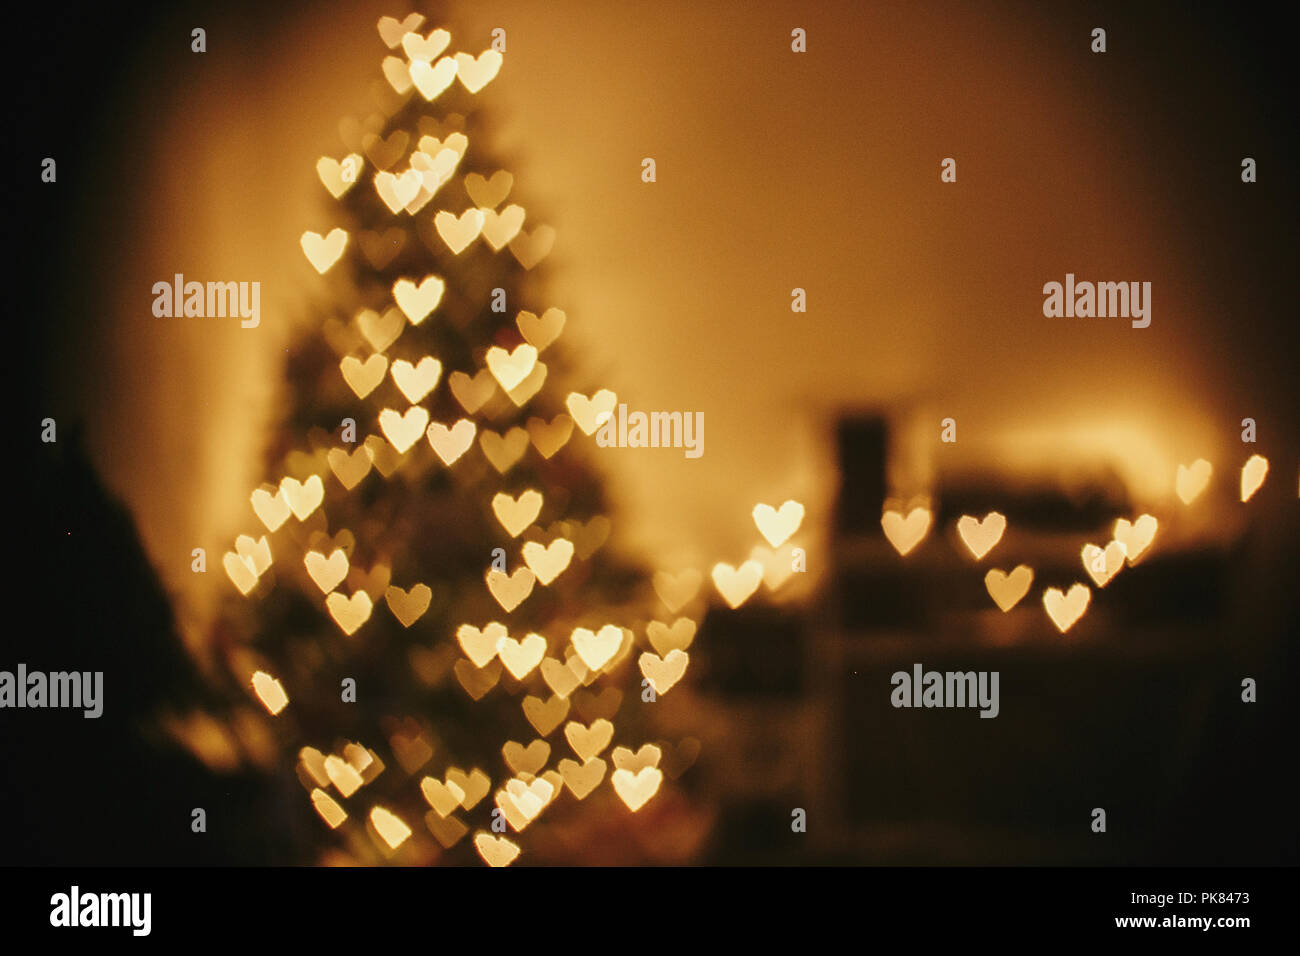 christmas abstract background, beautiful christmas tree golden lights hearts bokeh. blur of yellow glowing illumination in festive room. decor for win - Stock Image